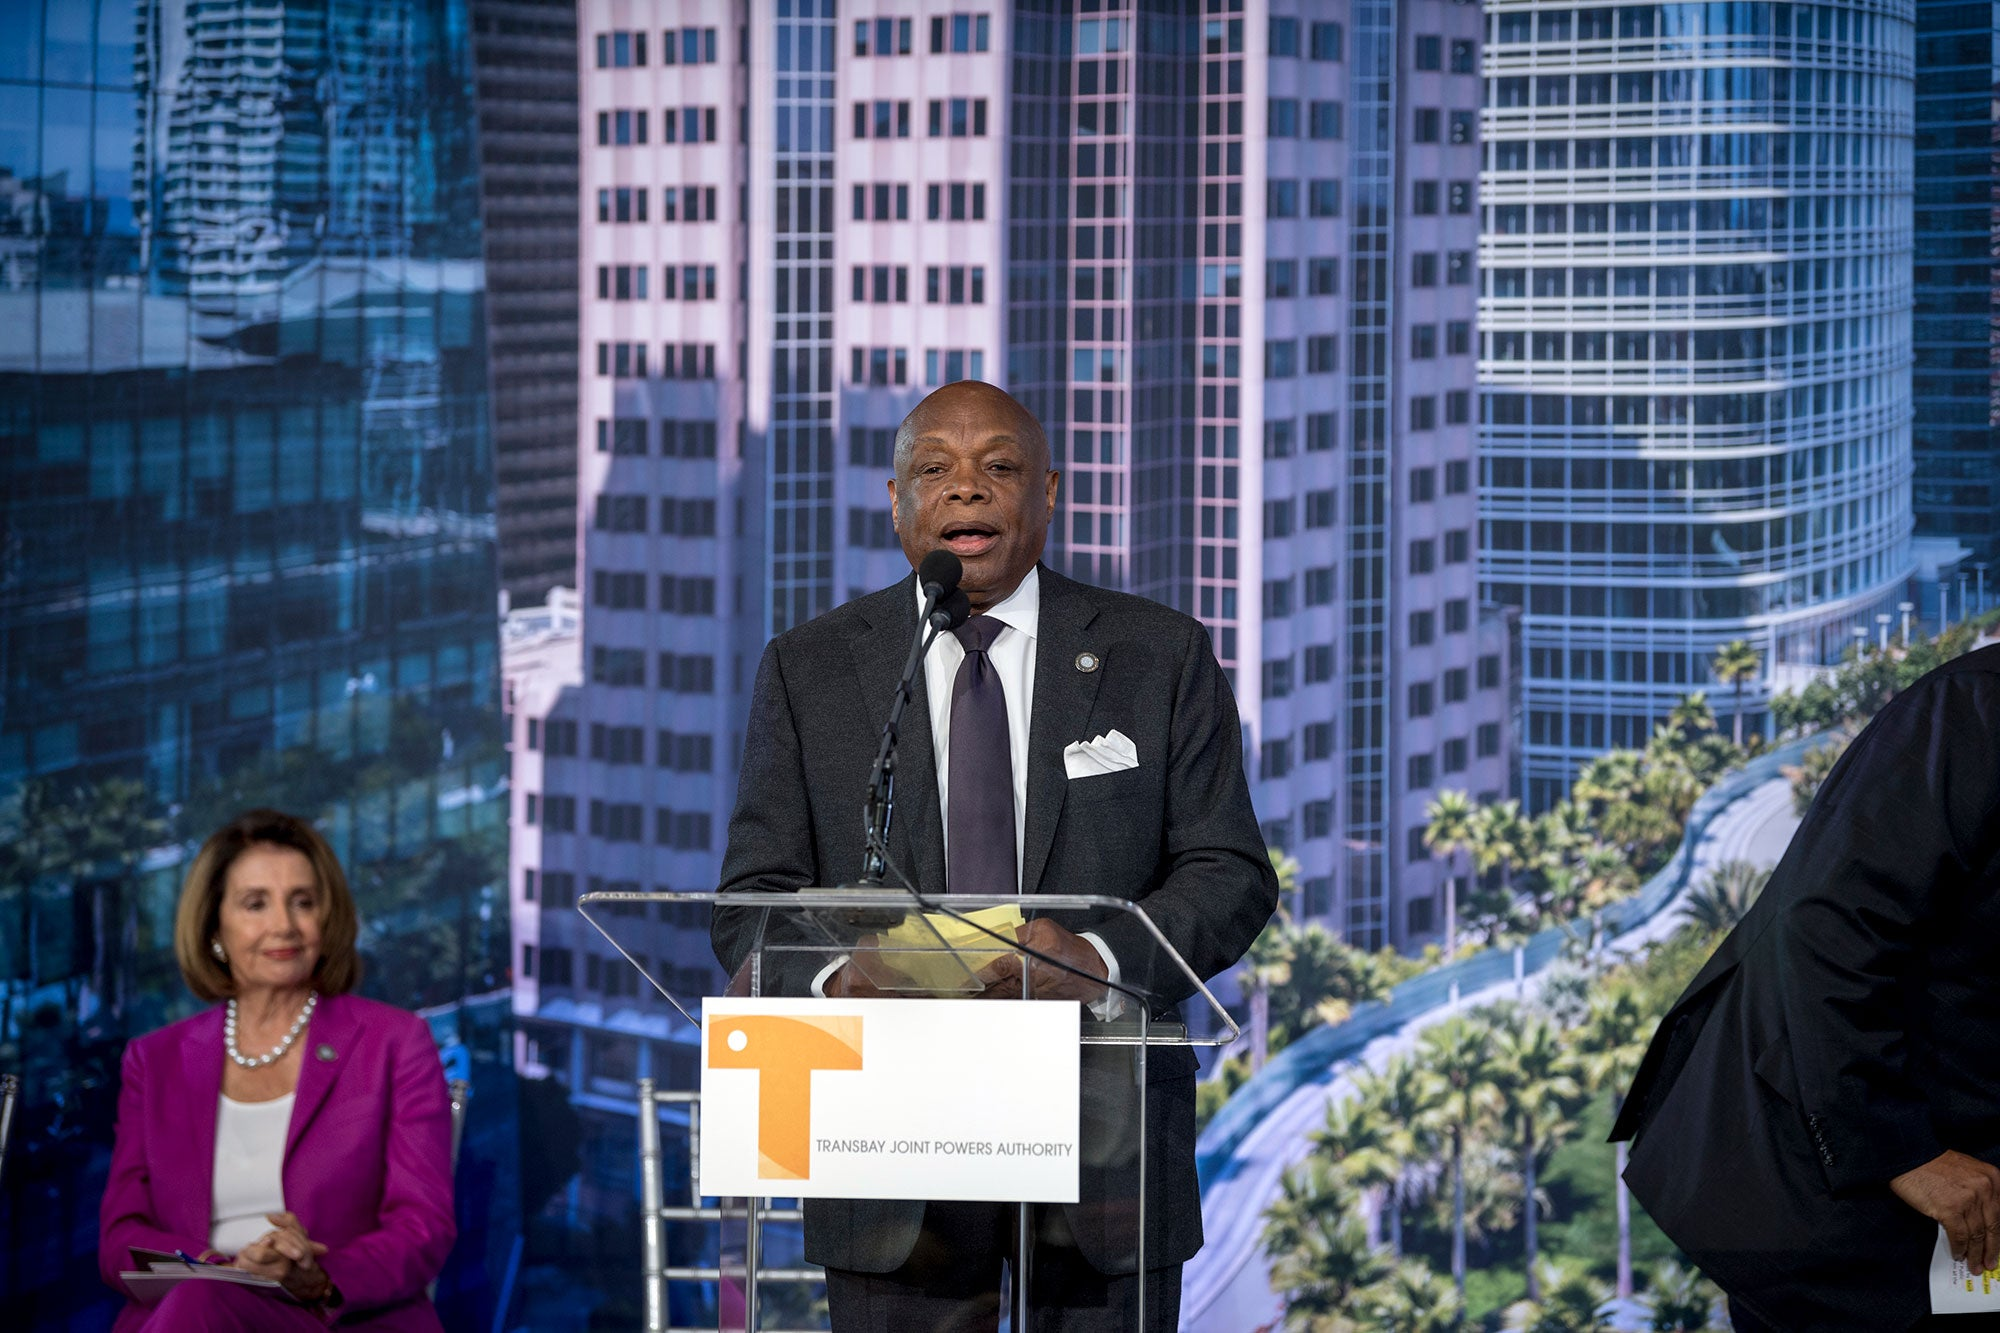 Former San Francisco Mayor Willie Brown